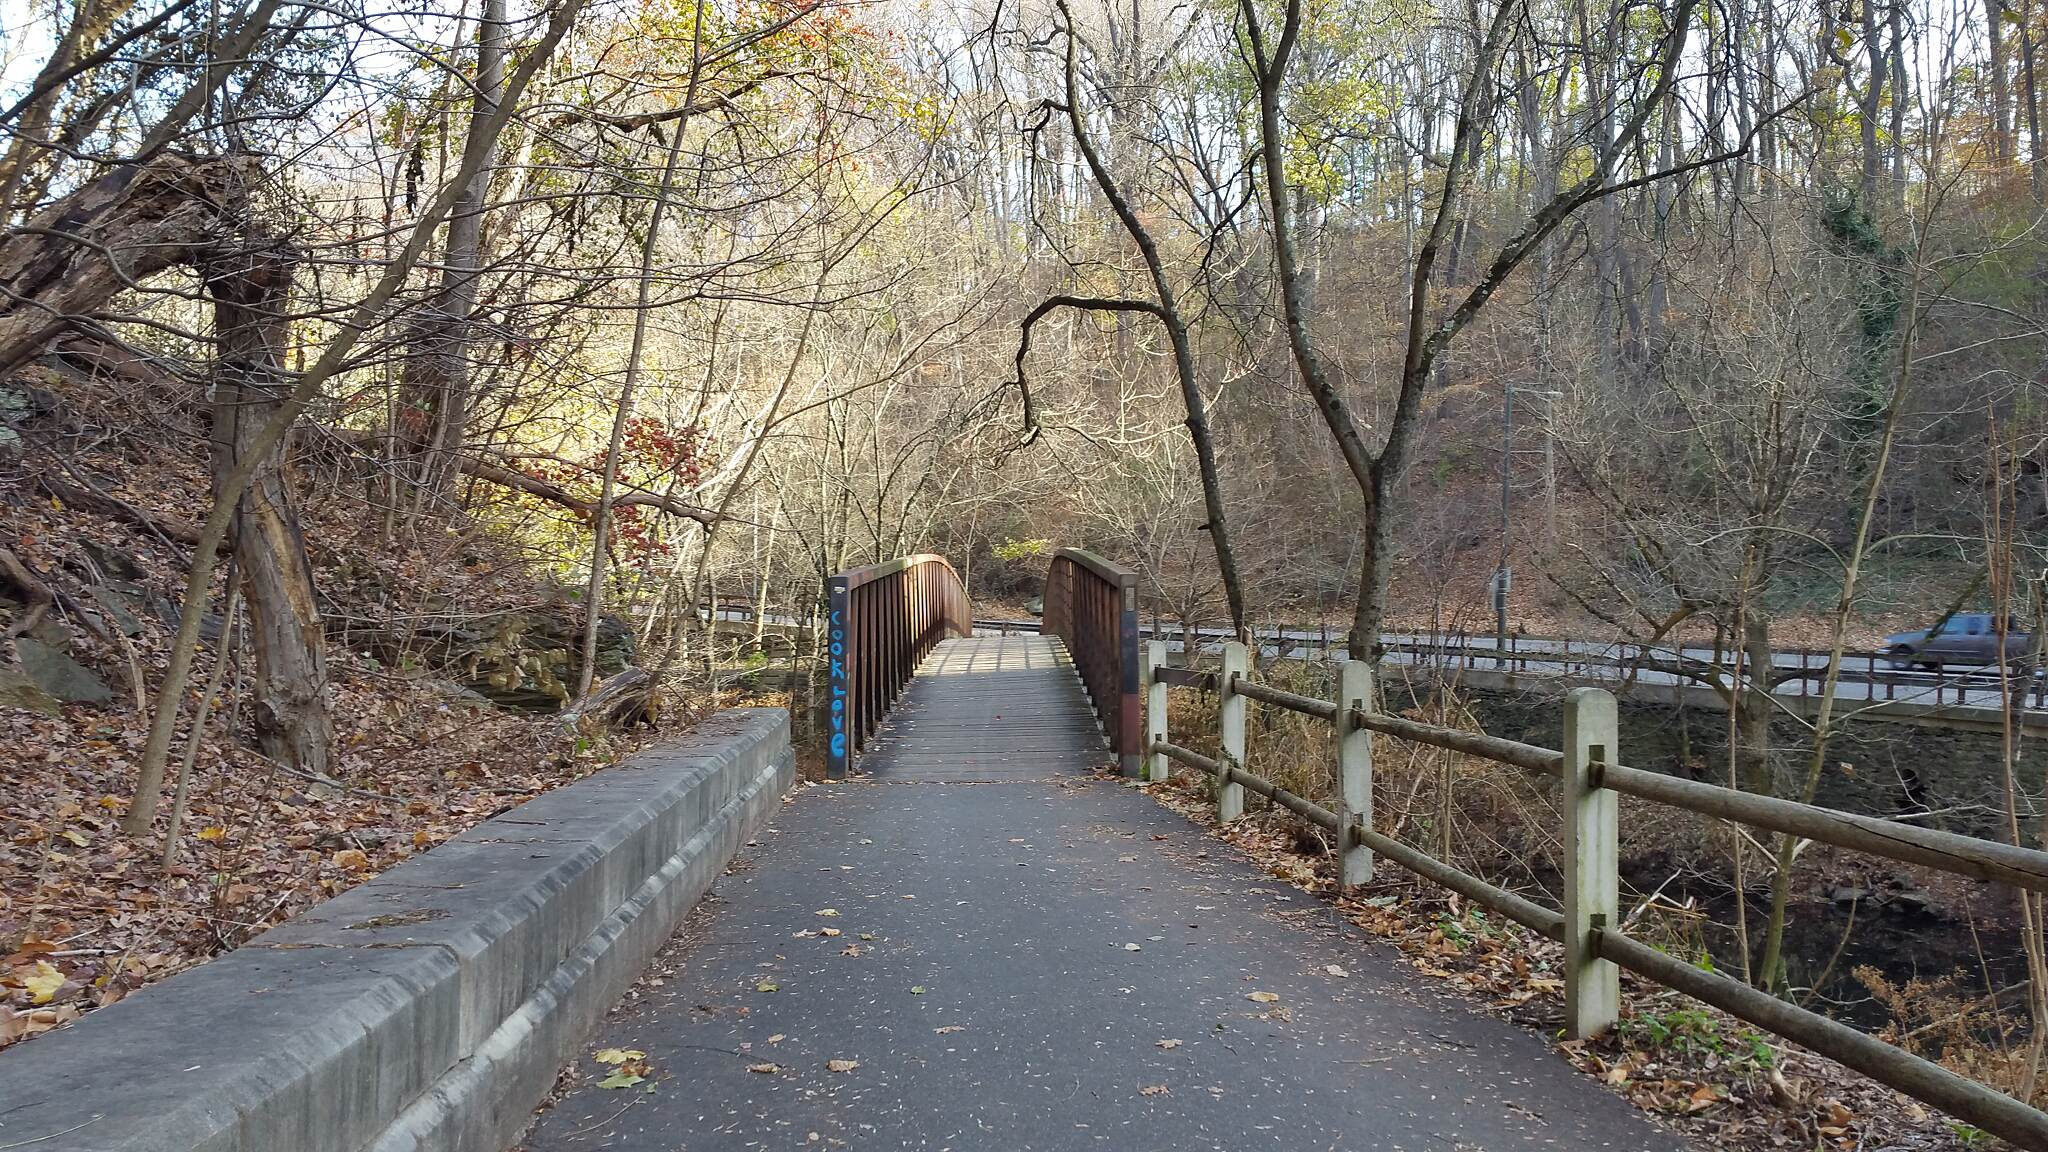 Lincoln Drive Trail  The Trail Bikepath Bridge Going Over The Wissahickon Creek Location just past the Henry Ave Bridge, north side.